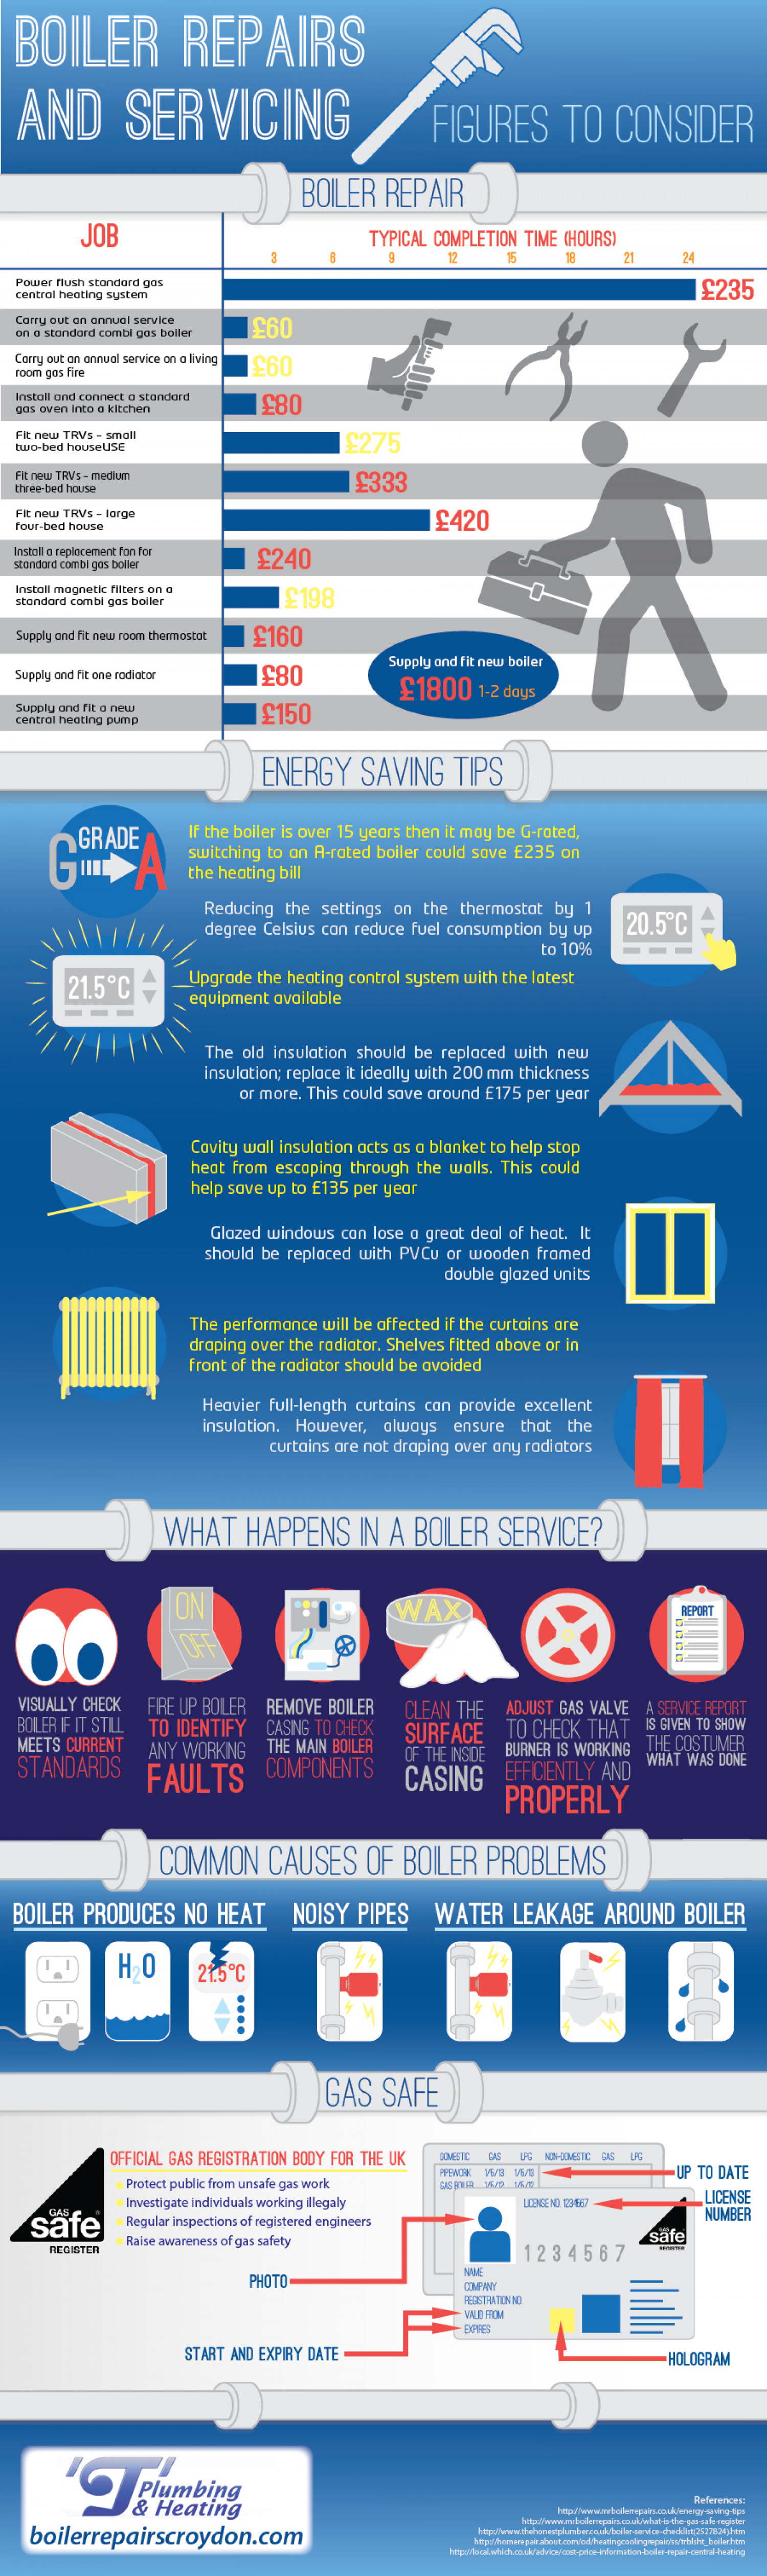 Boiler Repairs and Servicing: Figures to Consider Infographic